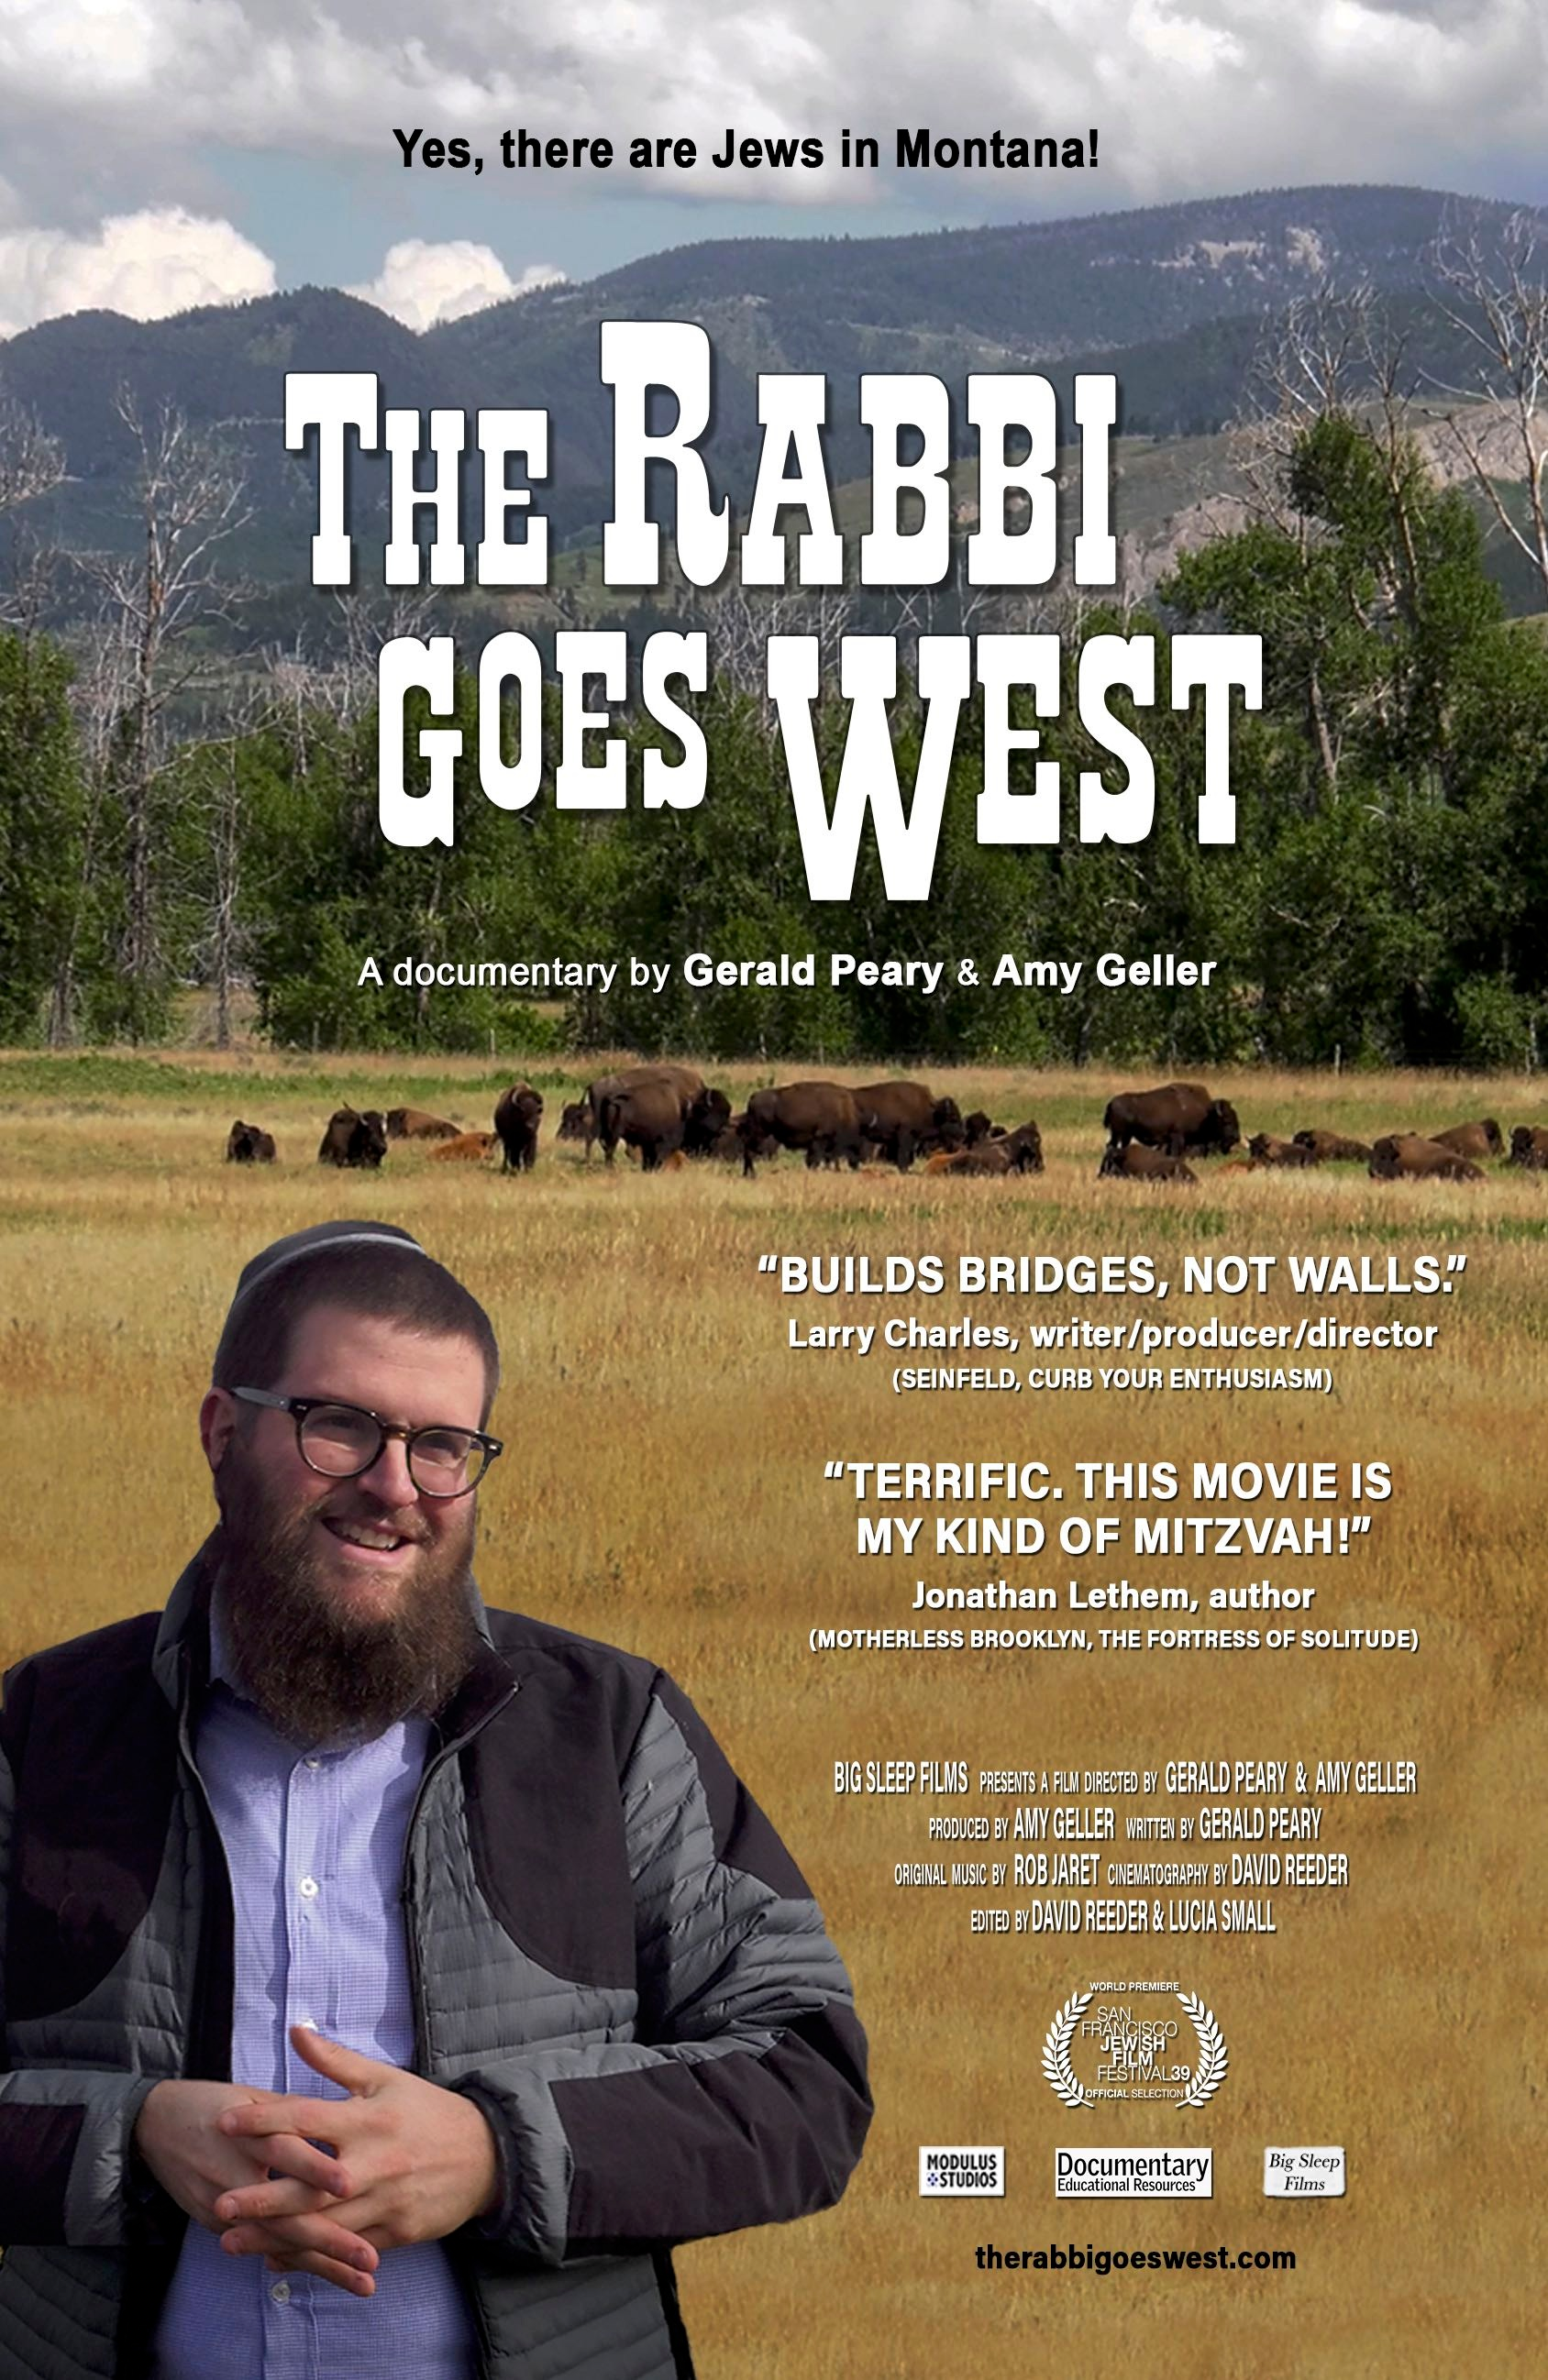 The+Rabbi+Goes+West_official+poster.jpg